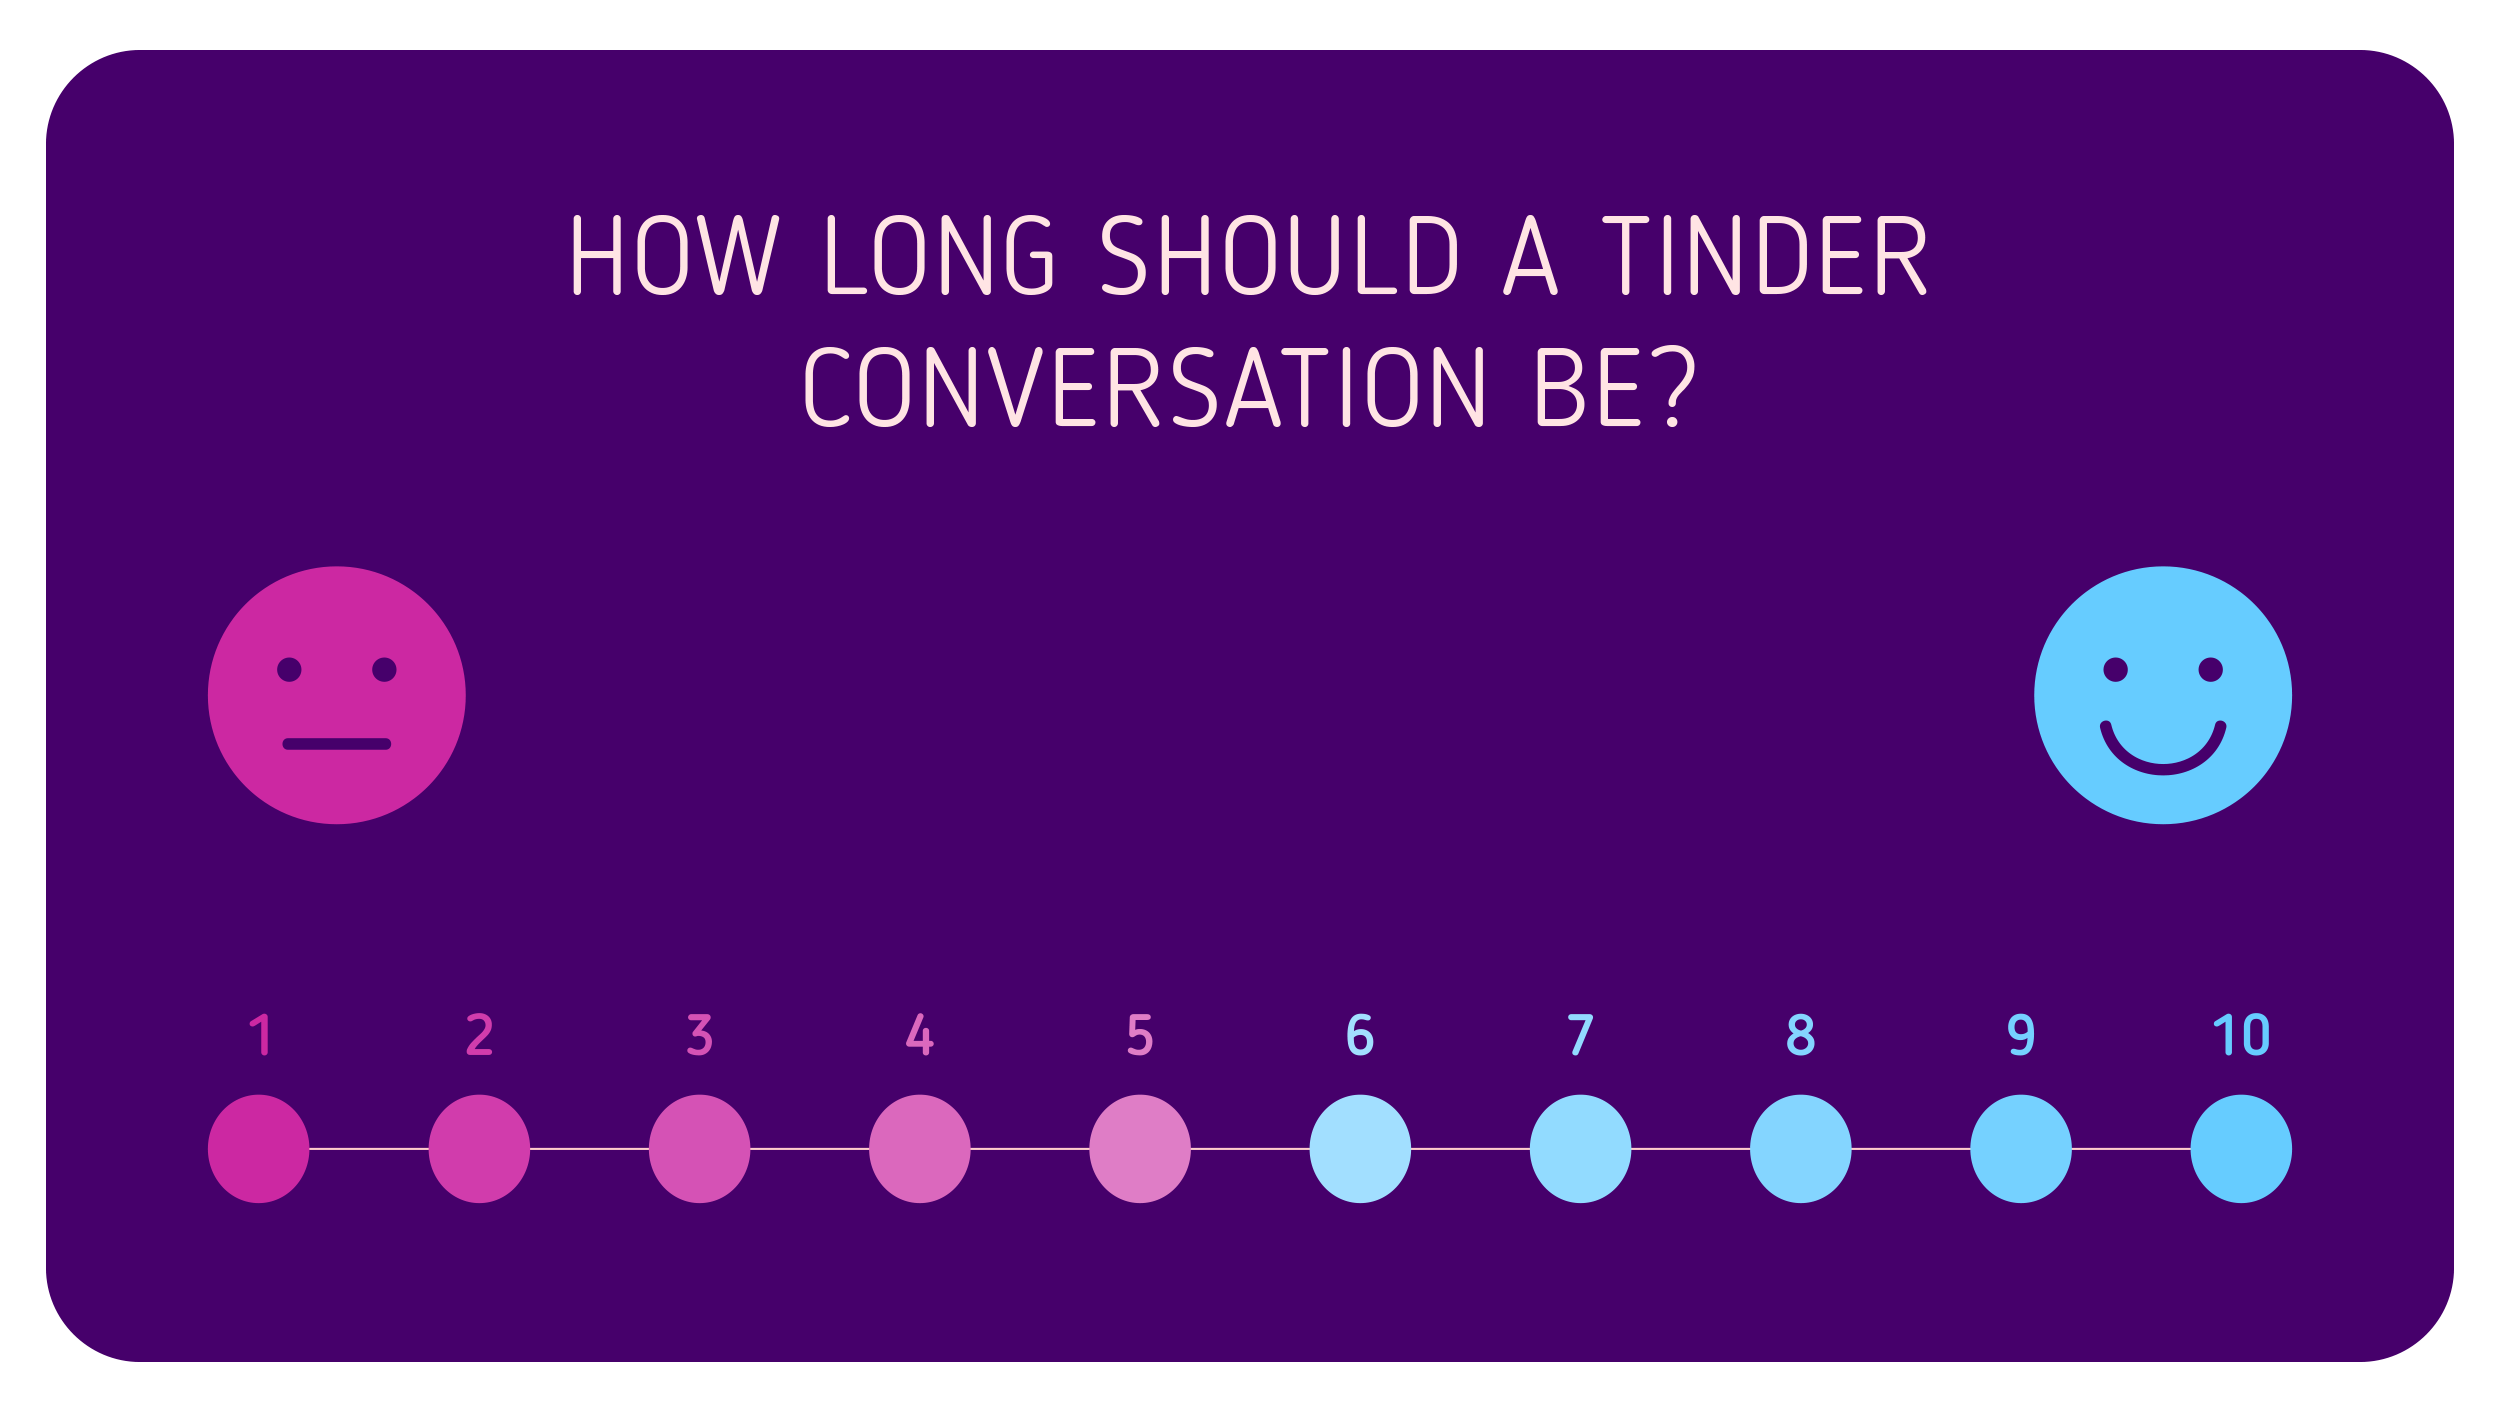 How Long Should a Tinder Conversation Be?